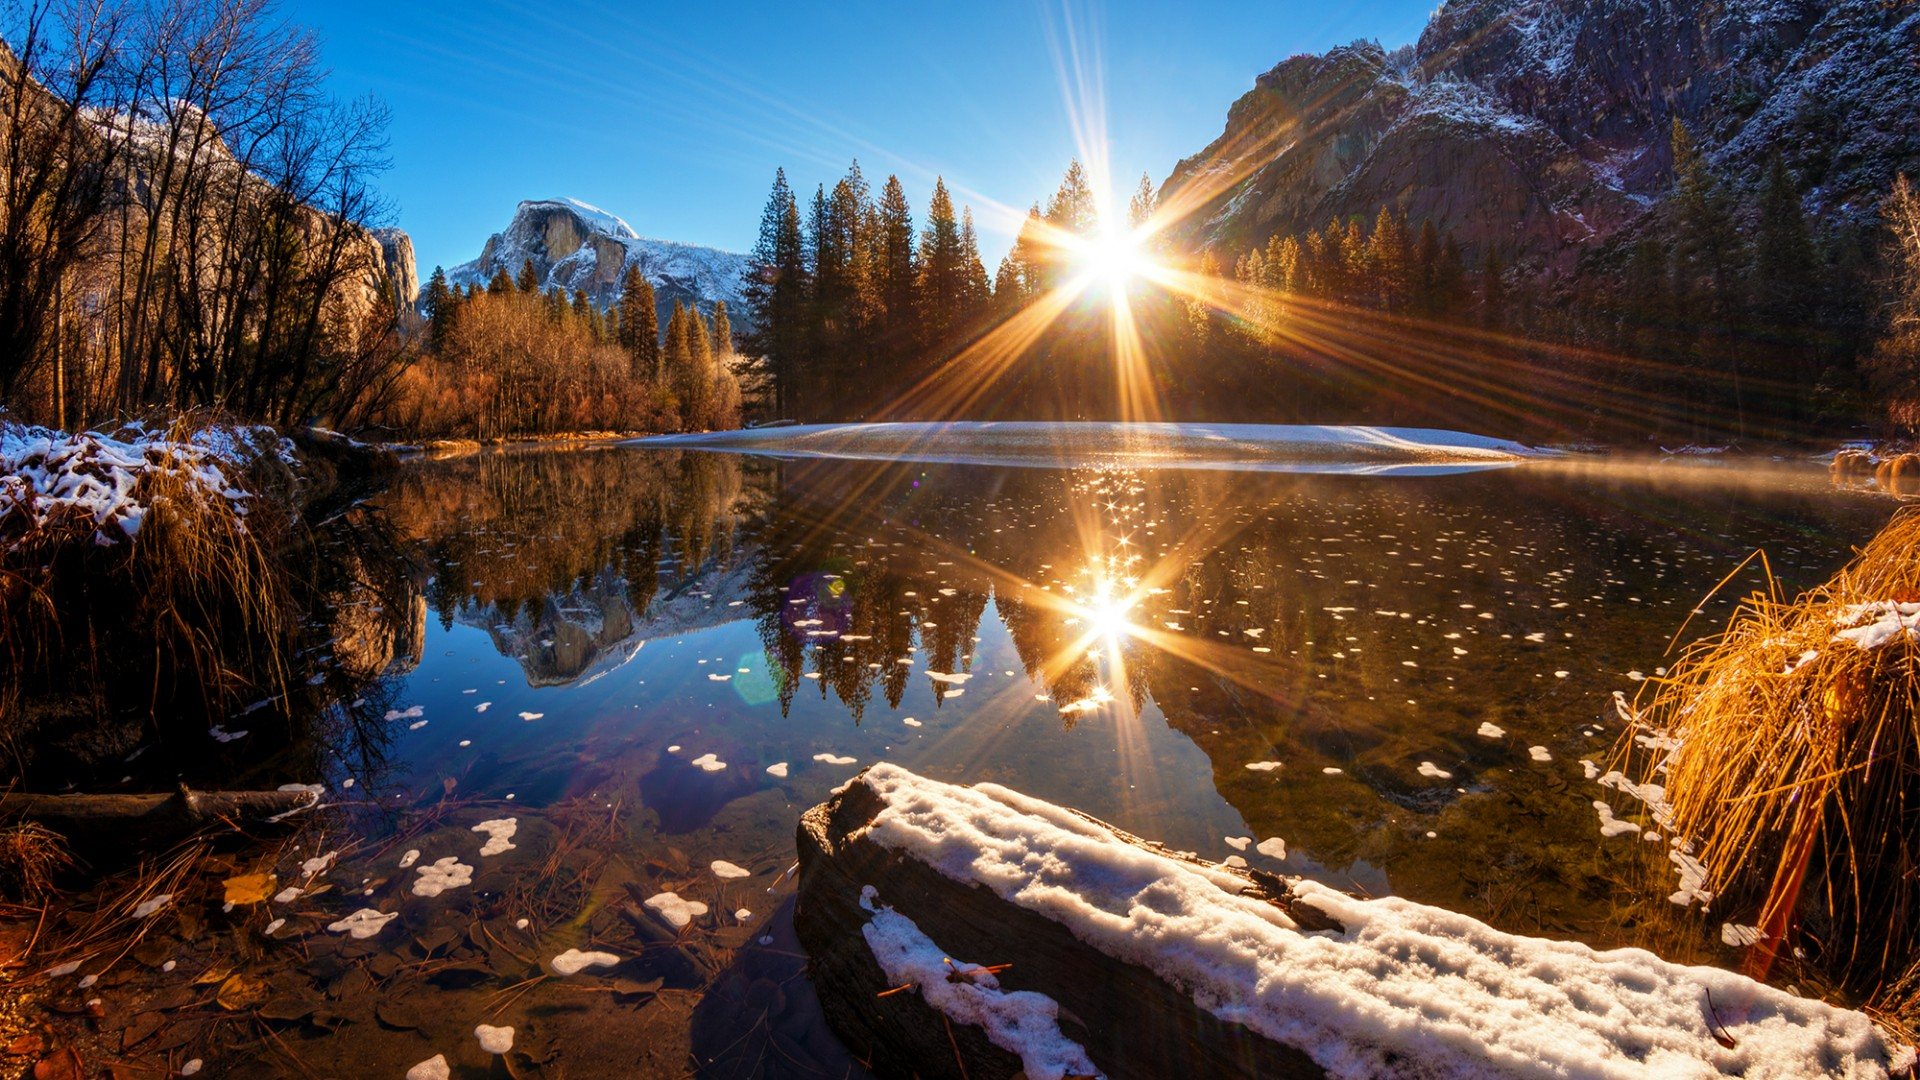 Ray of lights reflected in the Mirror Lake wallpaper